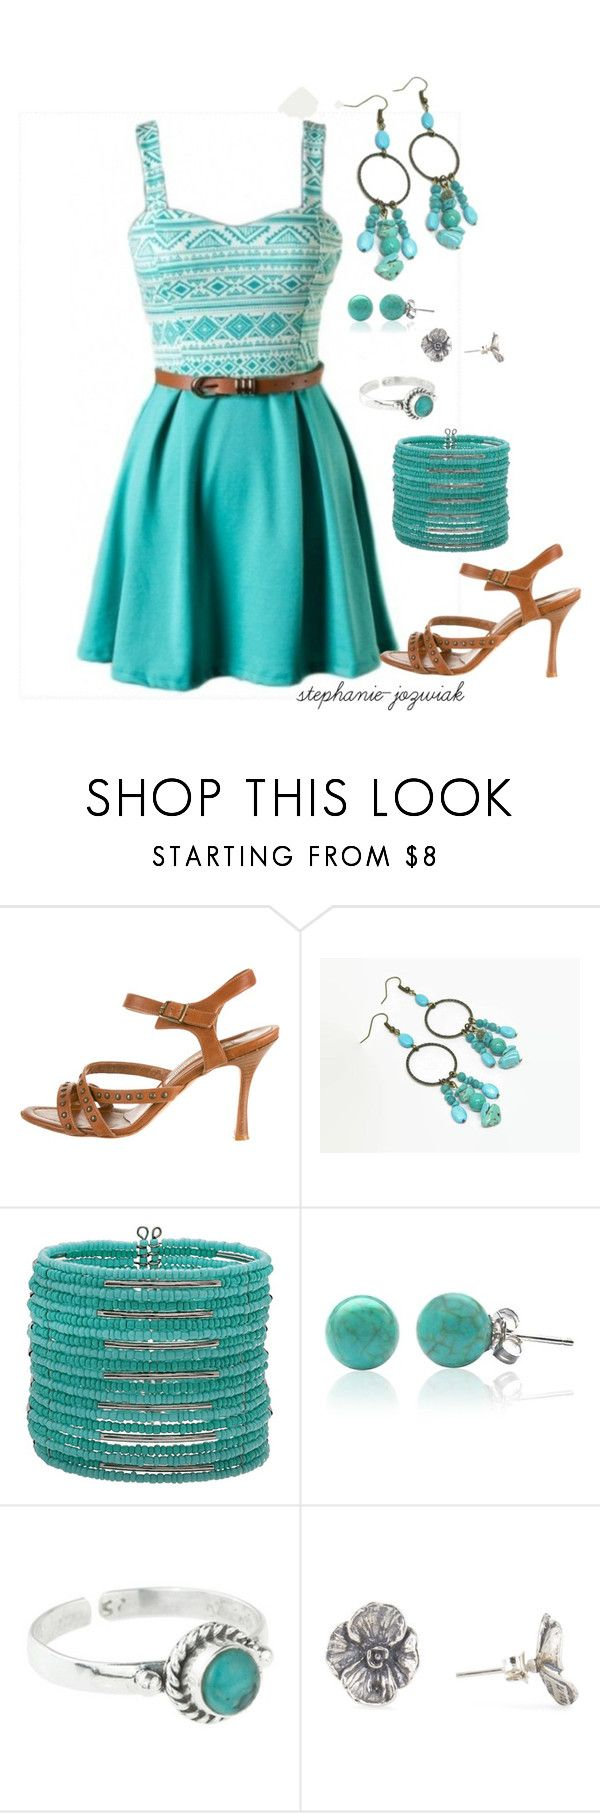 """""""Kenna's Outfit for Audrianna's Baby Shower"""" by stephanie-jozwiak ❤ liked on Polyvore featuring Manolo Blahnik, Mixit, Bling Jewelry and Rock 'N Rose"""